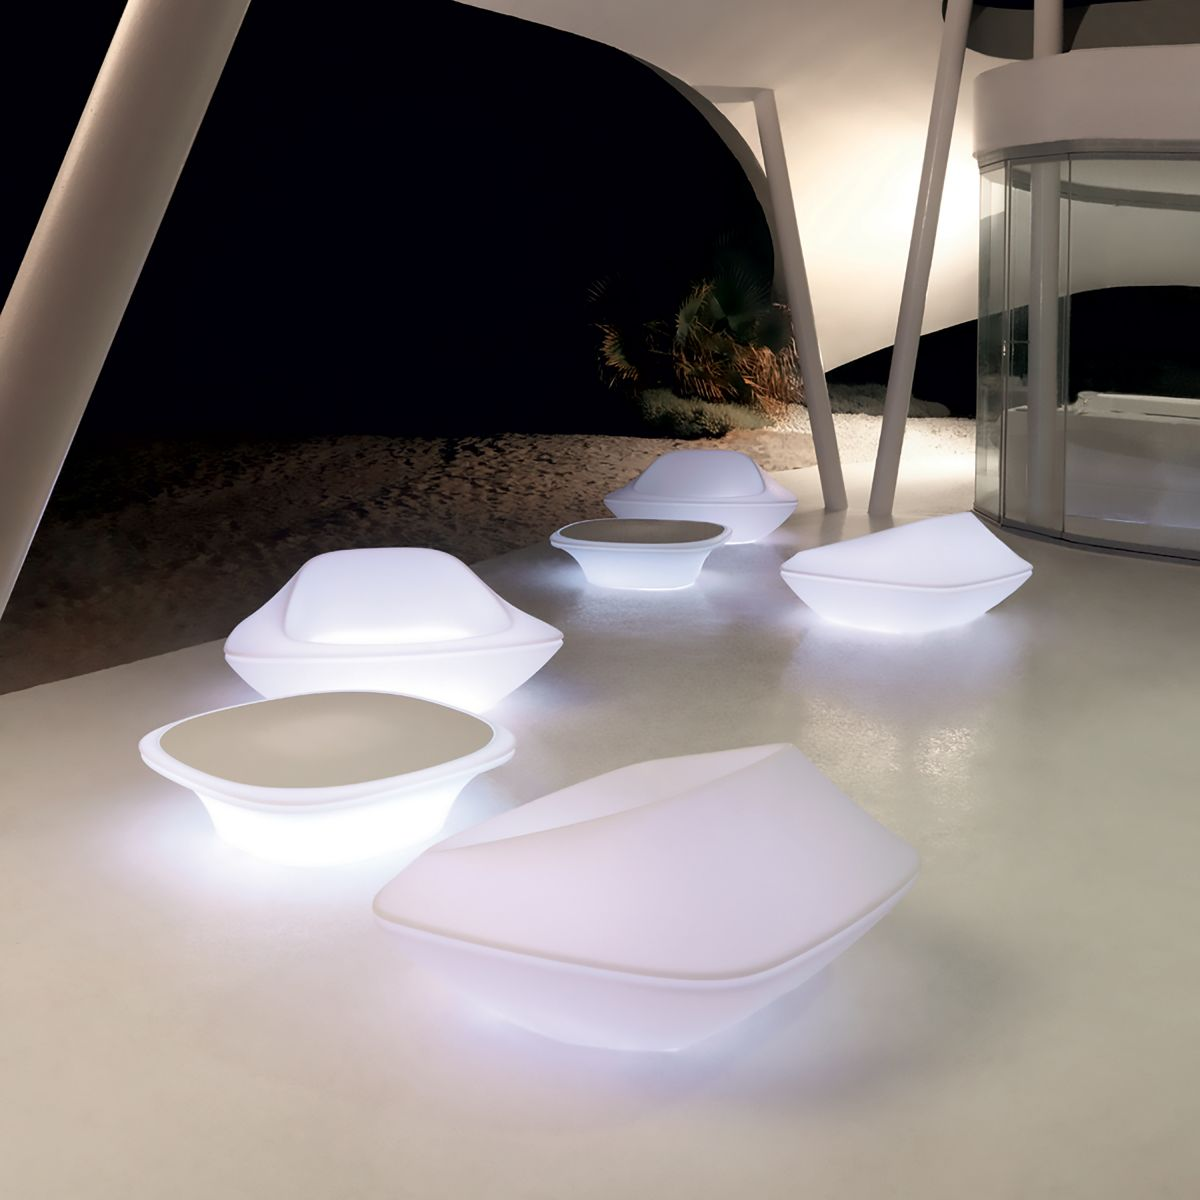 table basse avec led rgb design ufo vondom zendart design. Black Bedroom Furniture Sets. Home Design Ideas